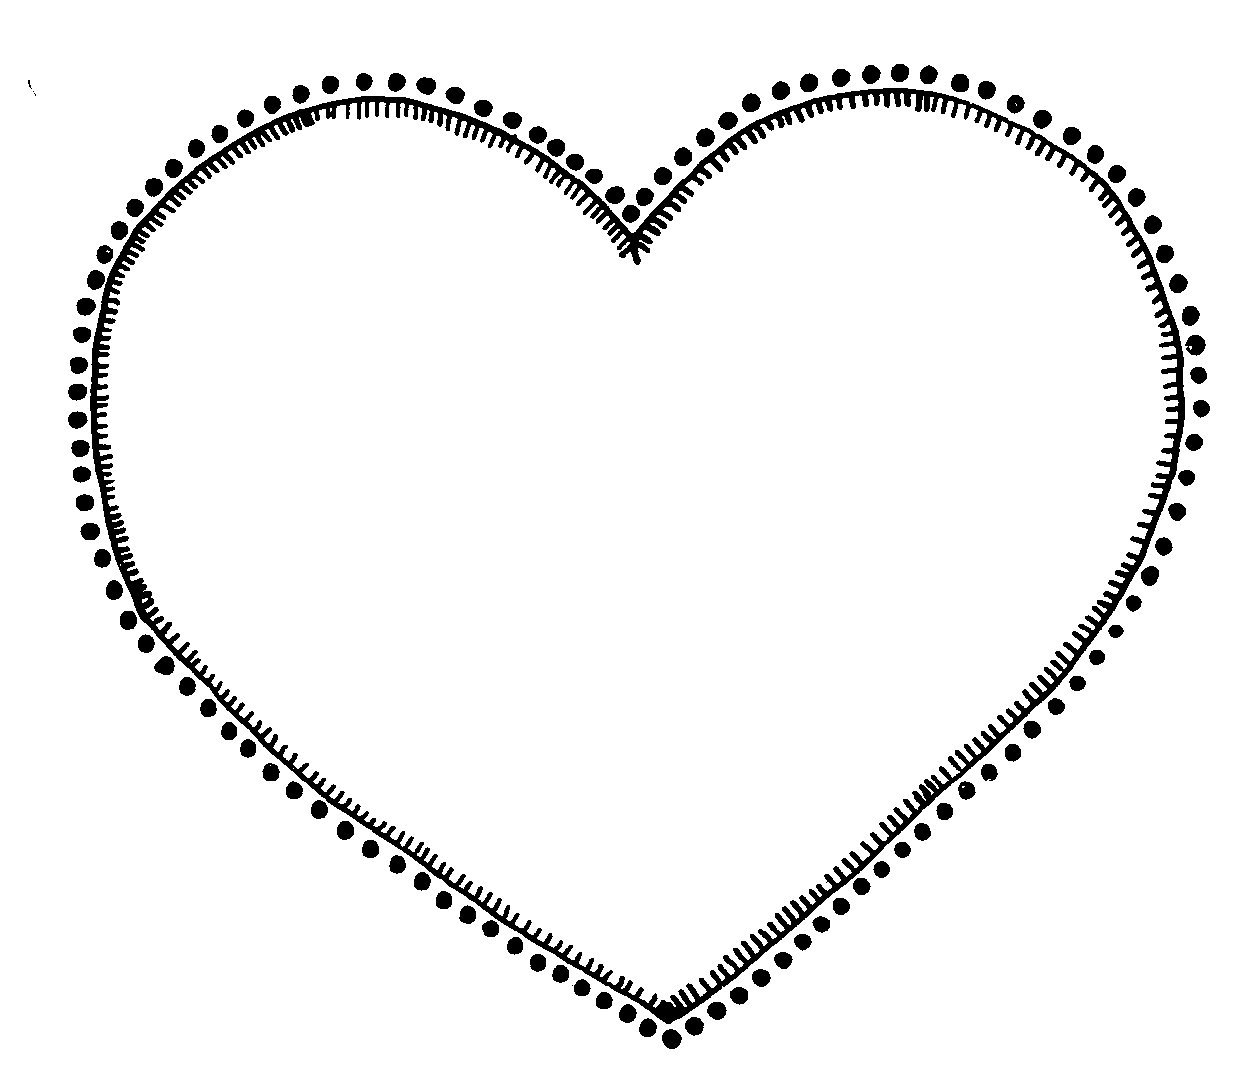 hight resolution of heart clipart black and white hearts clipart heart black and white free images 2